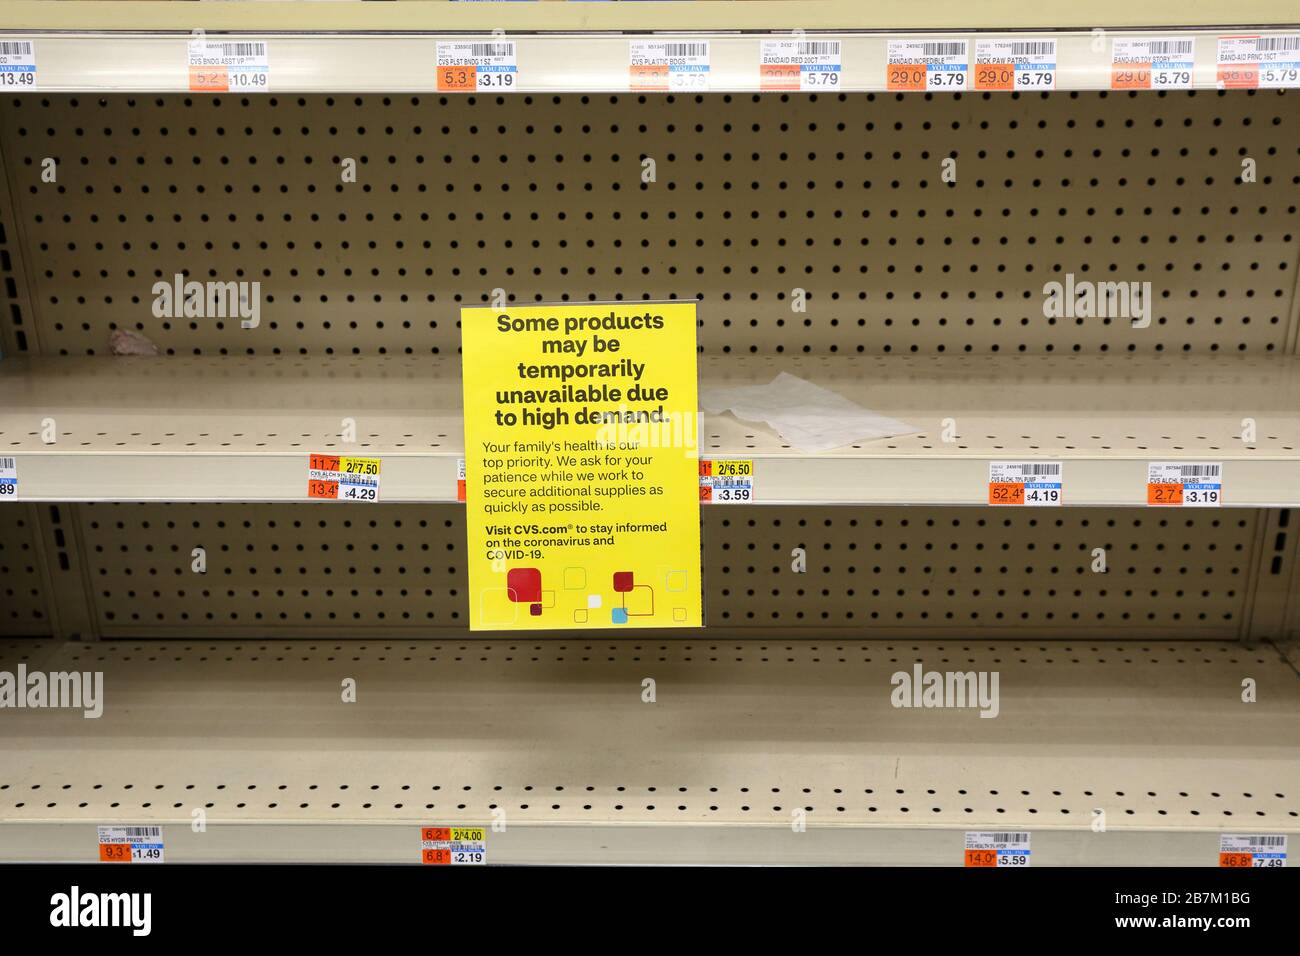 a-sign-warning-of-product-unavailability-sits-on-a-shelf-emptied-of-isopropyl-alcohol-and-bandages-at-a-nyc-chain-drug-store-march-16-2020-2B7M1BG.jpg